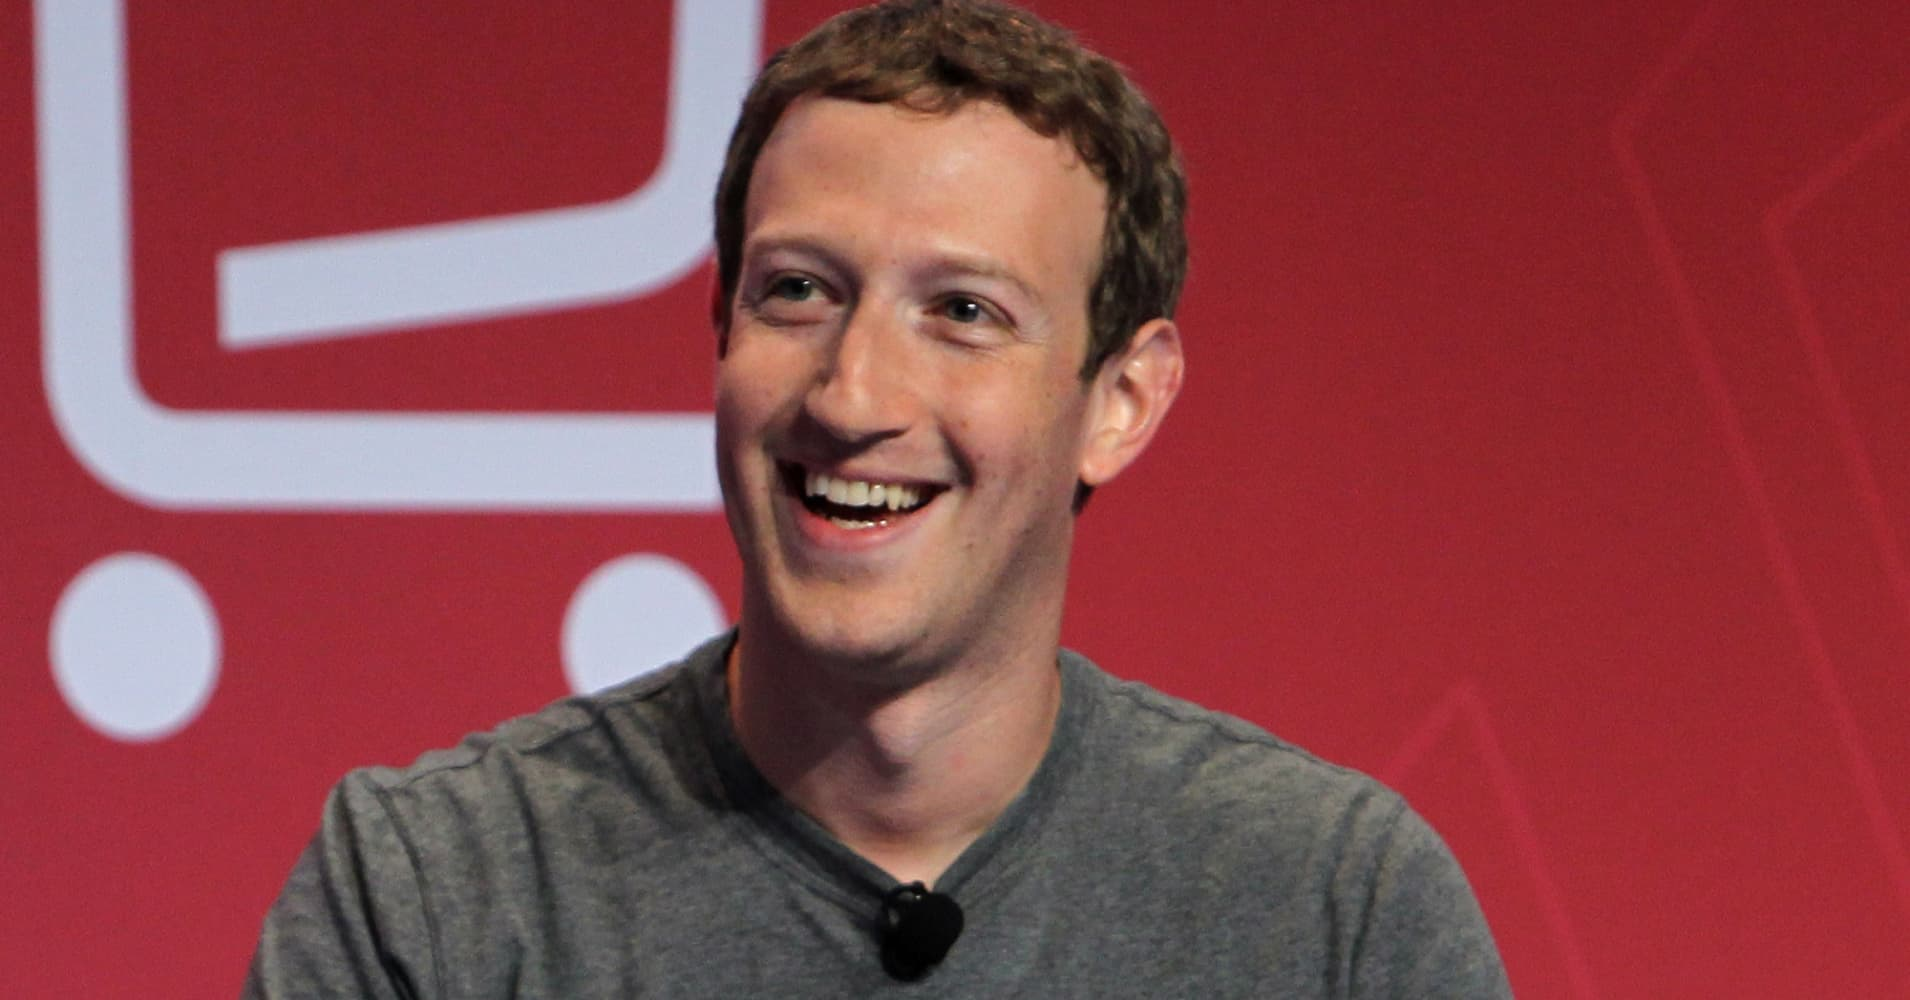 Facebook CEO and co-founder Mark Zuckerberg.